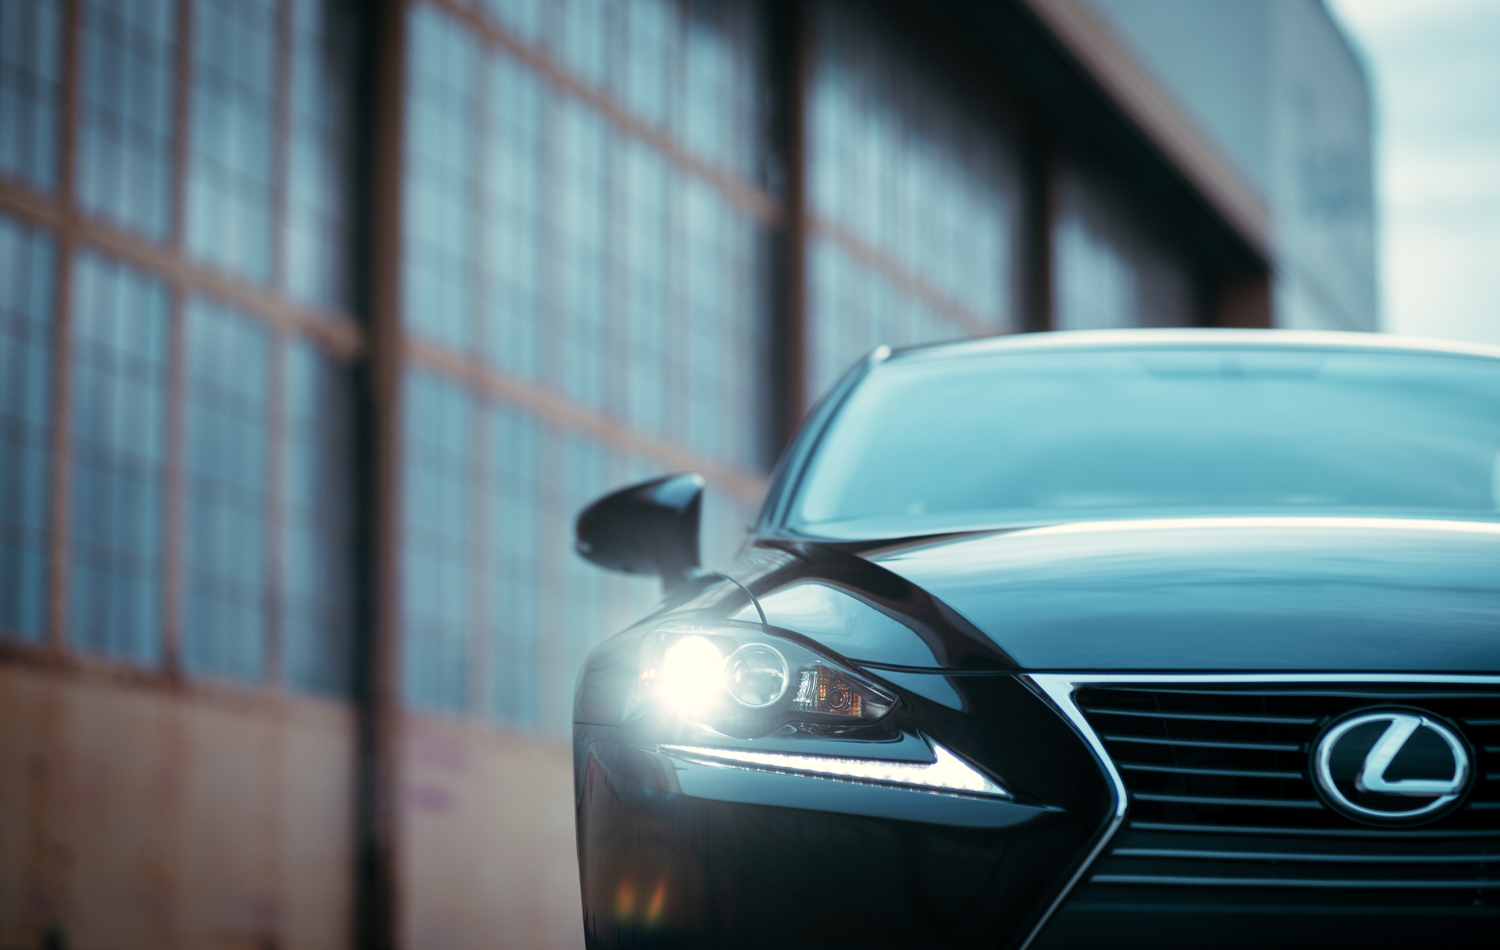 OBJKTV_Automotive_Lifestyle_Lexus-8849.jpg